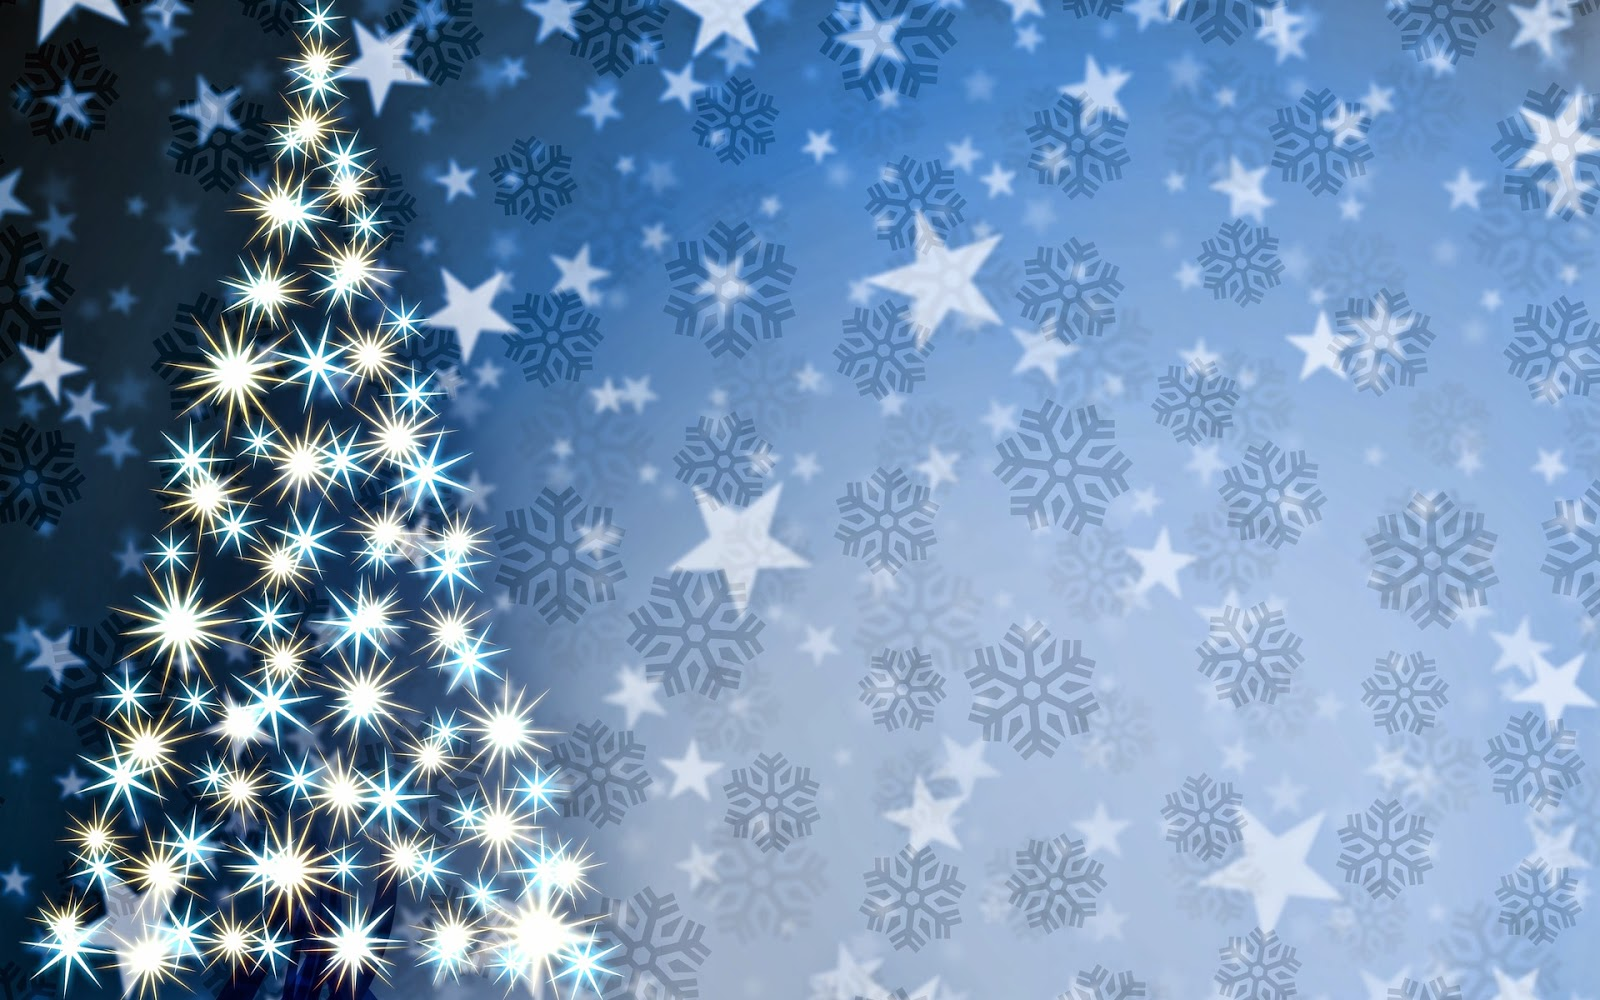 Abstract-Christmas-tree-designed-with-stars-beautiful-graphics-image-template.jpg